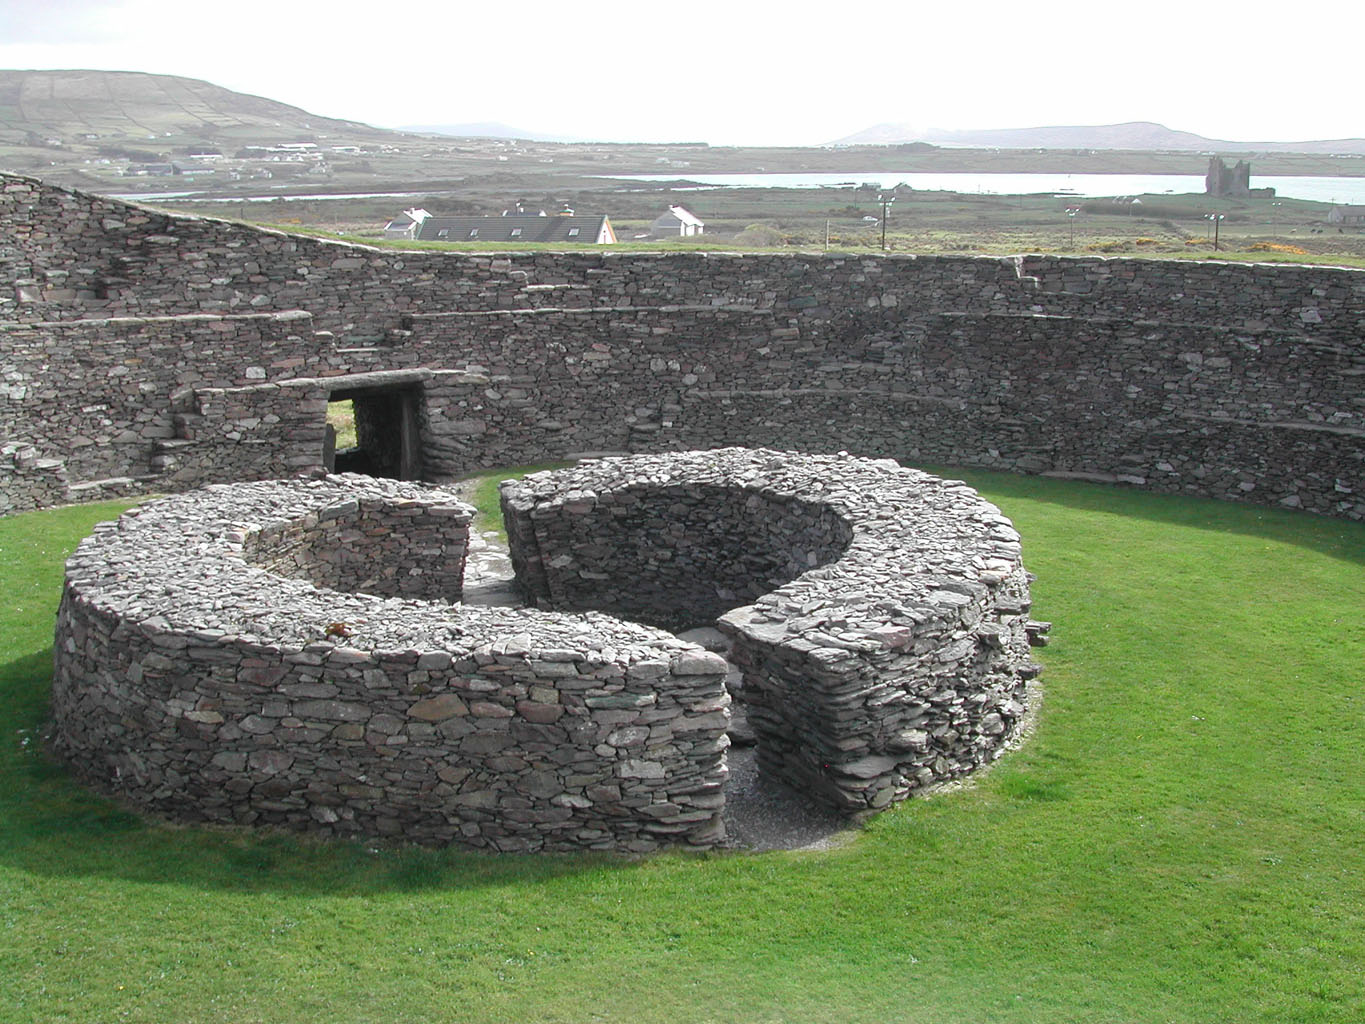 ageism in ireland Ireland: ireland, country of western europe occupying five-sixths of the westernmost major island of the british isles the country is noted for a rich heritage of culture and tradition that was linked initially to the gaelic language.